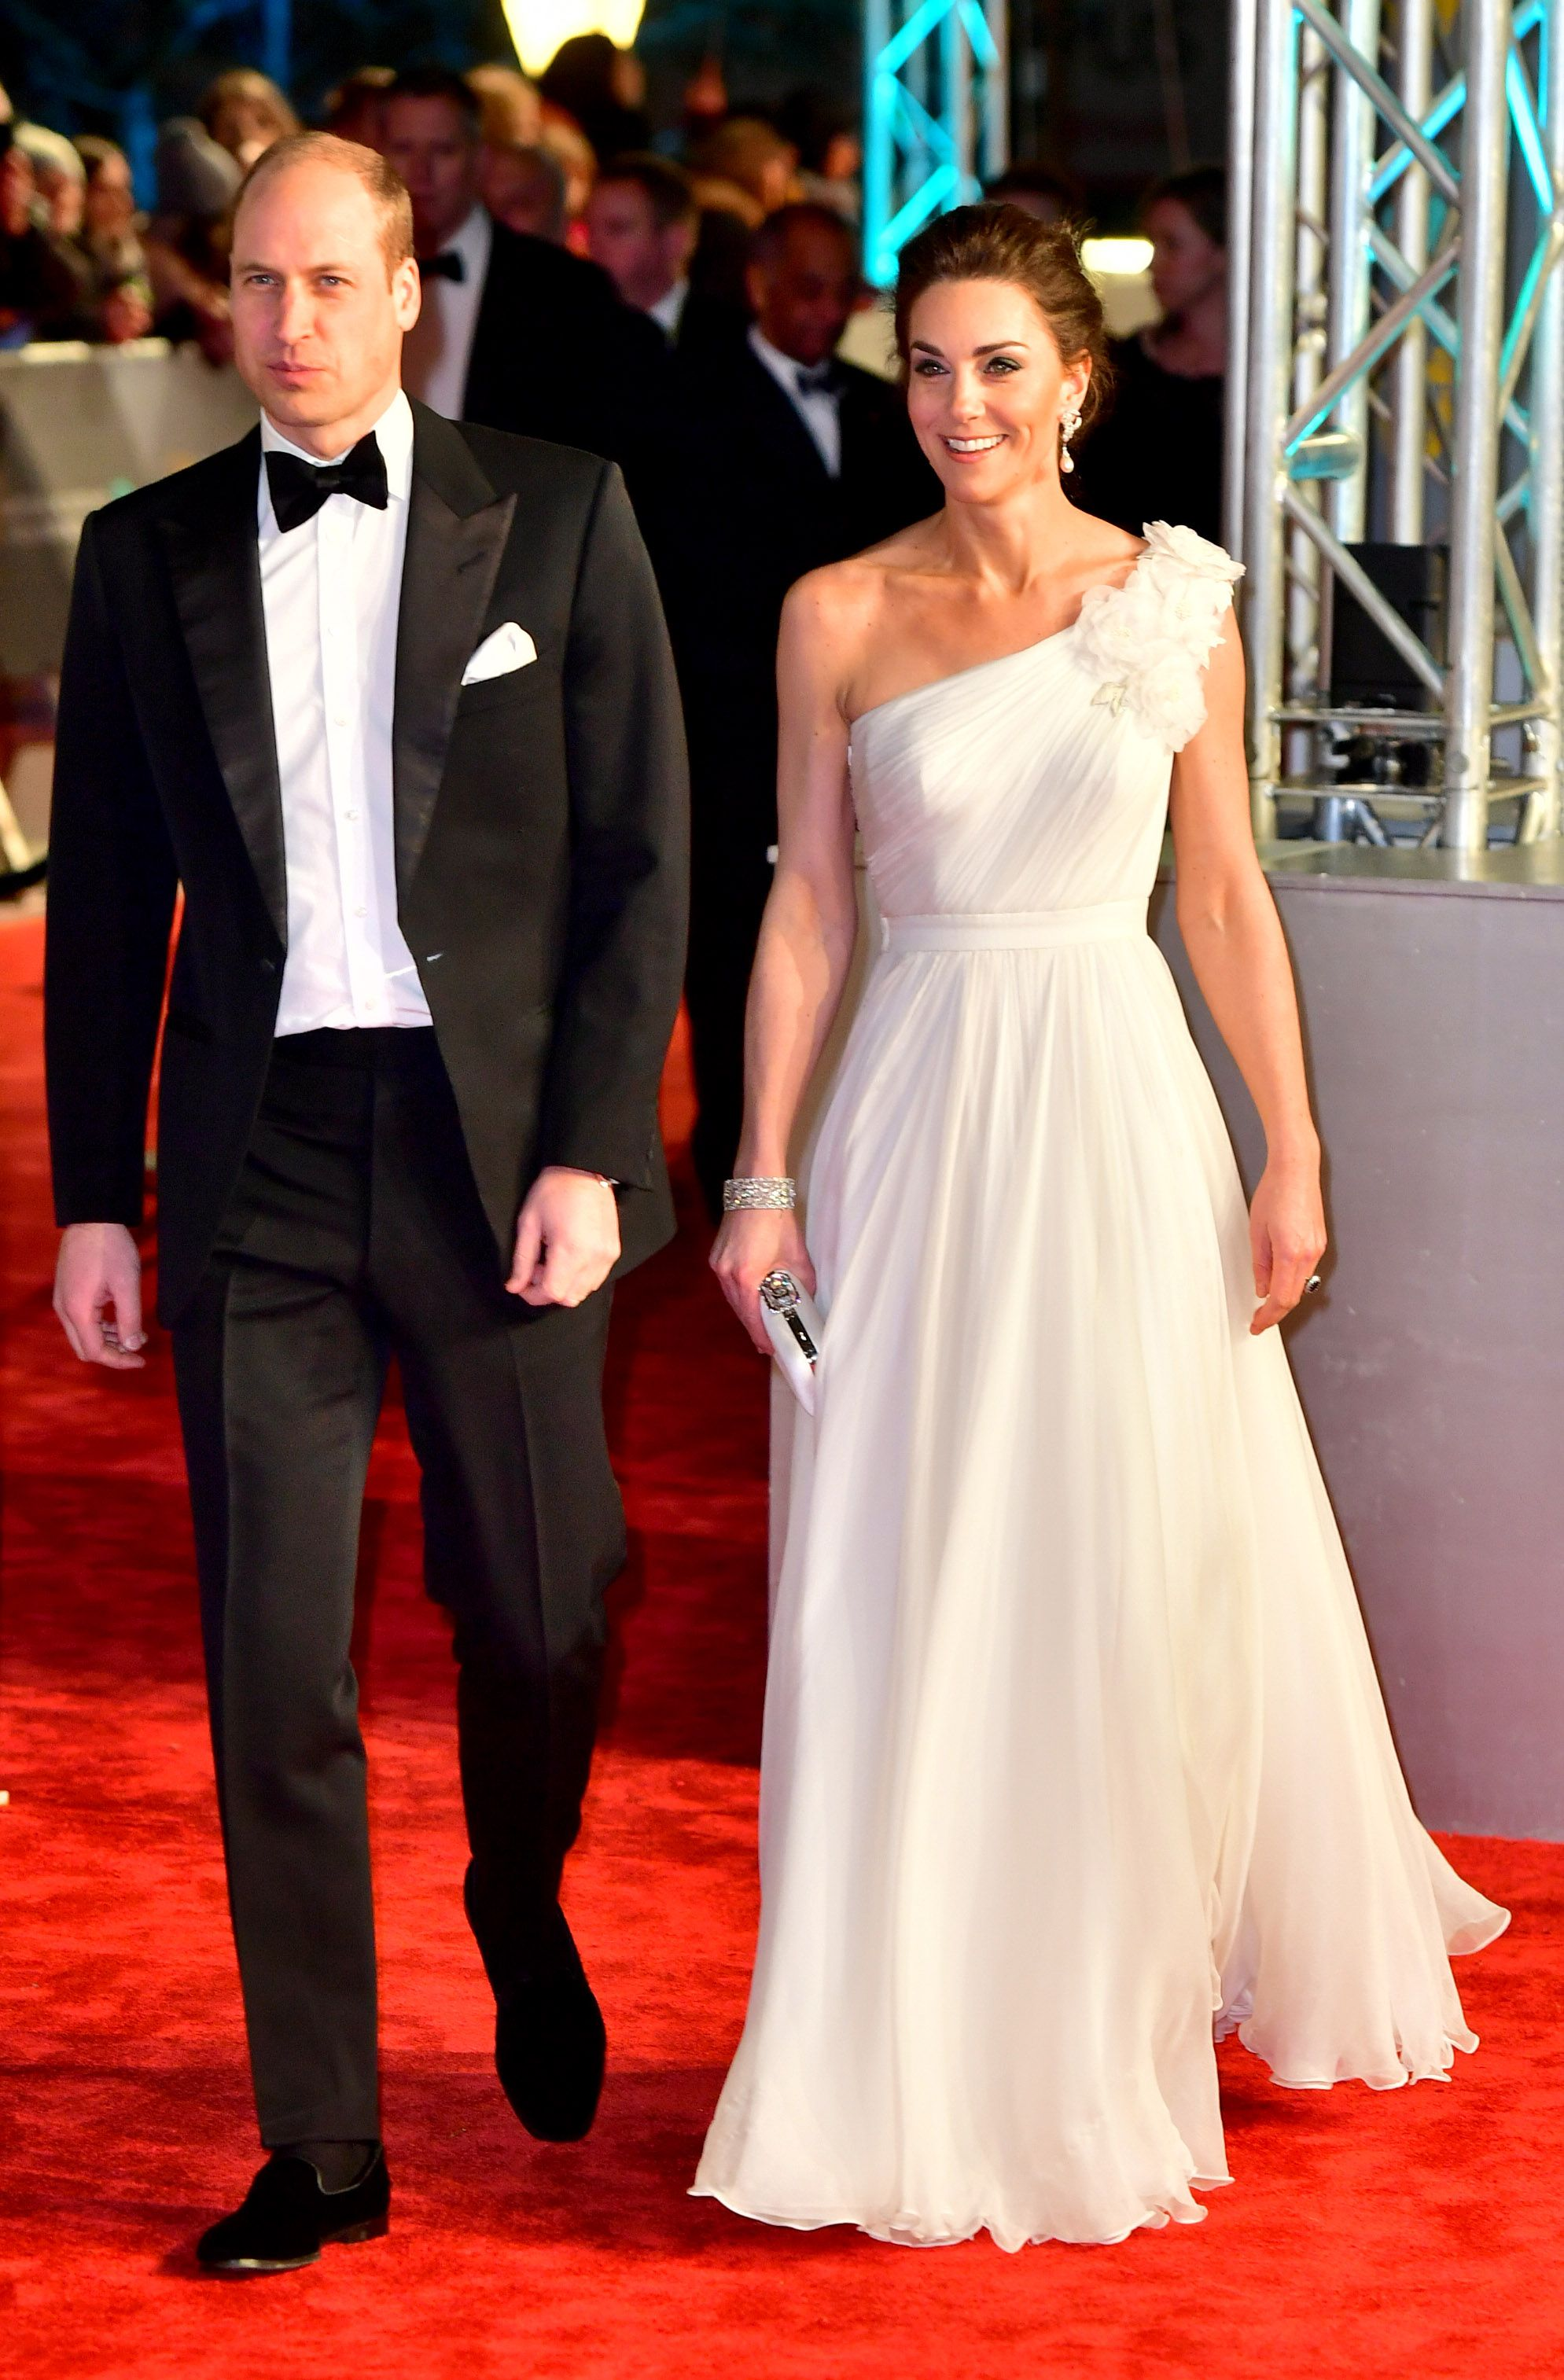 The Duke and Duchess of Cambridge to attend the 2020 BAFTAs